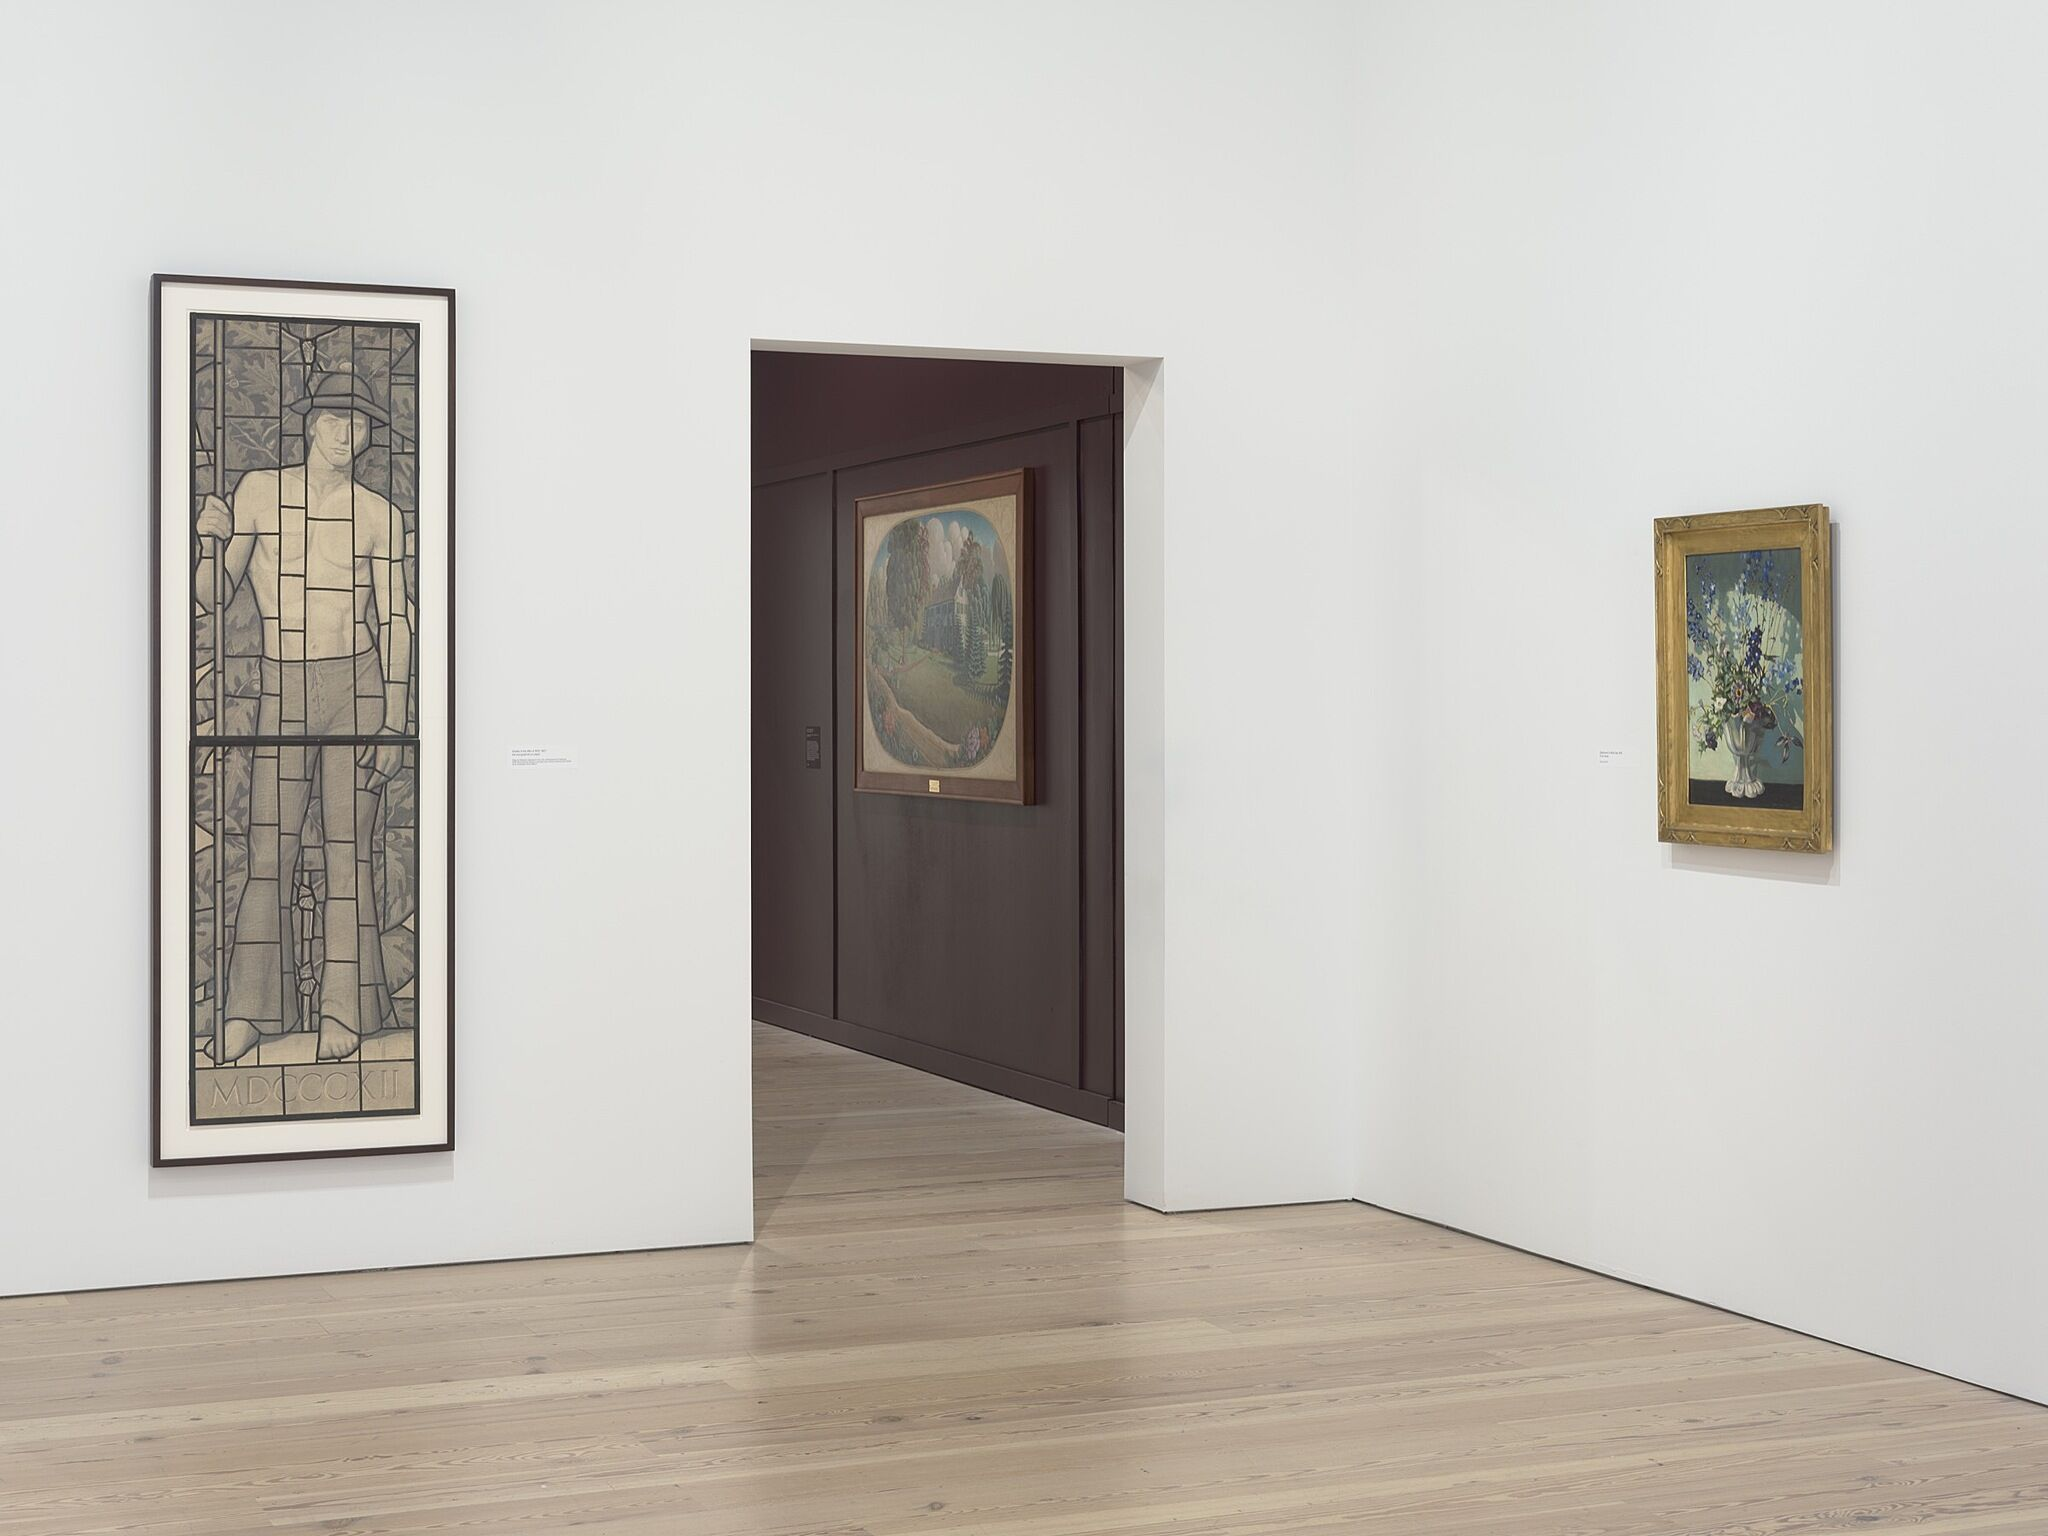 Three paintings in a white gallery space.